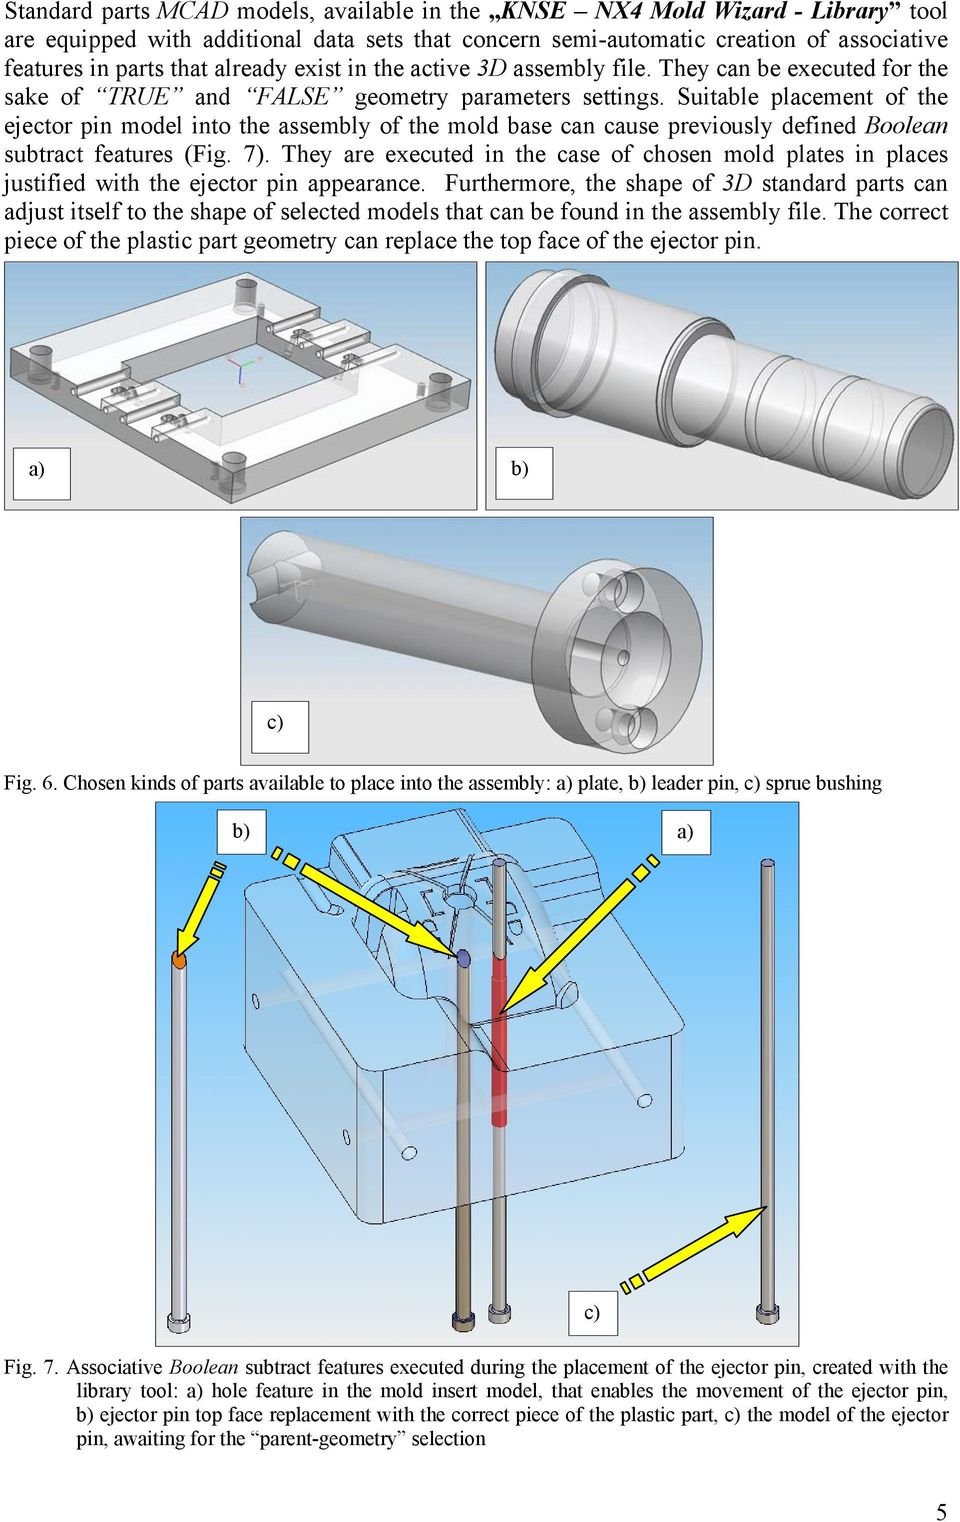 Digital library of chosen injection mold standard parts, dedicated